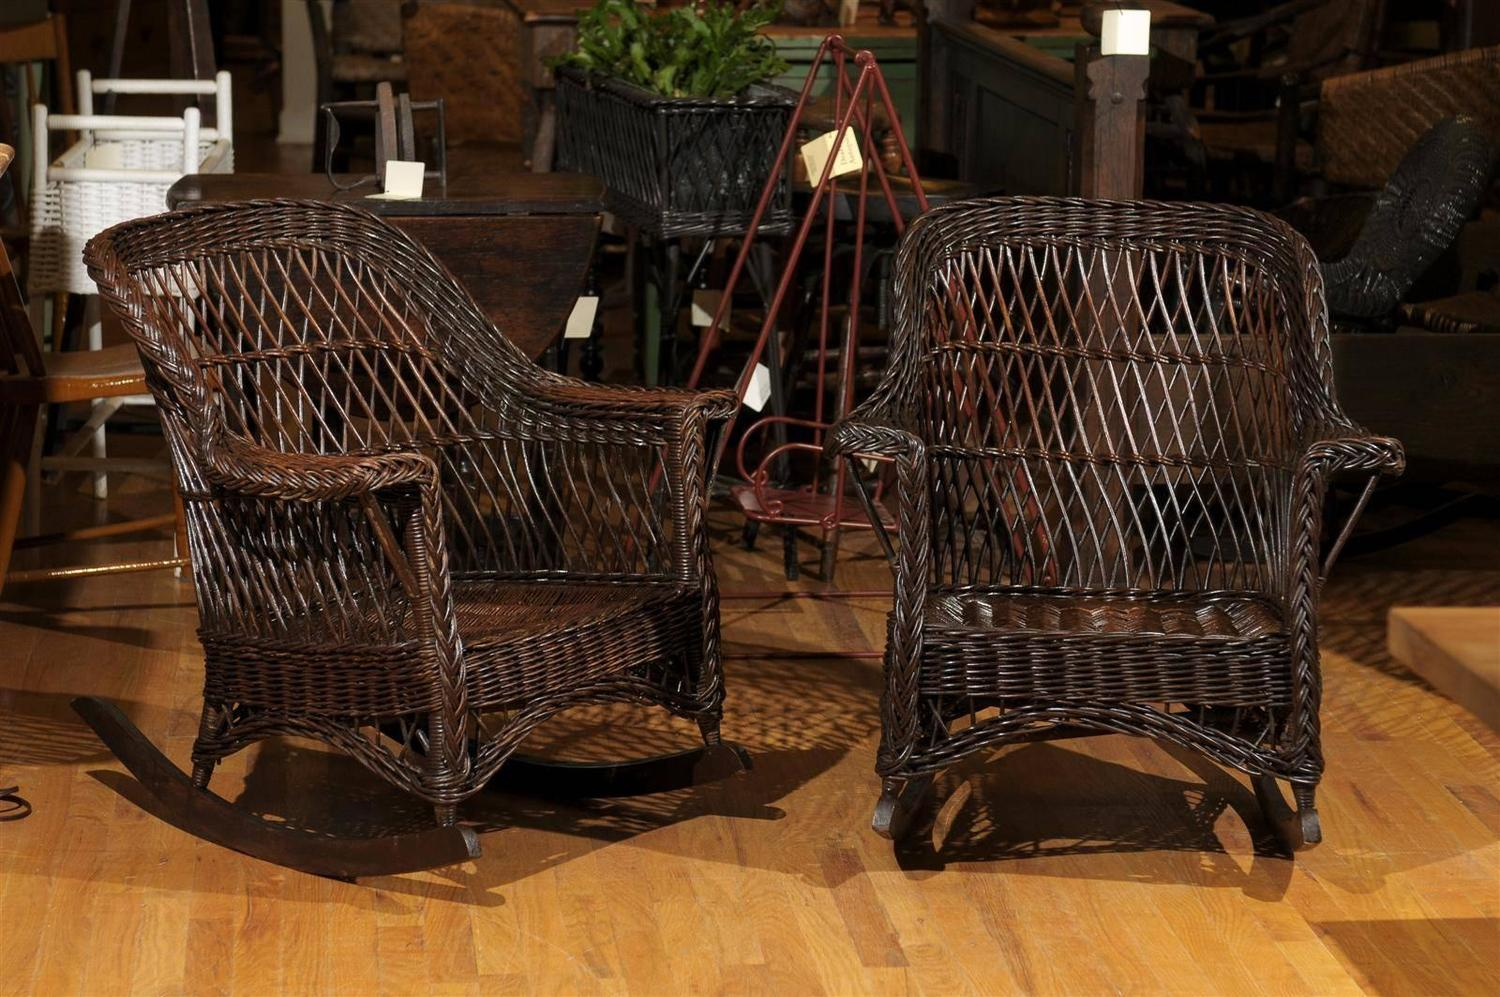 heywood wakefield dogbone chairs the emperor chair pair of wicker rockers at 1stdibs